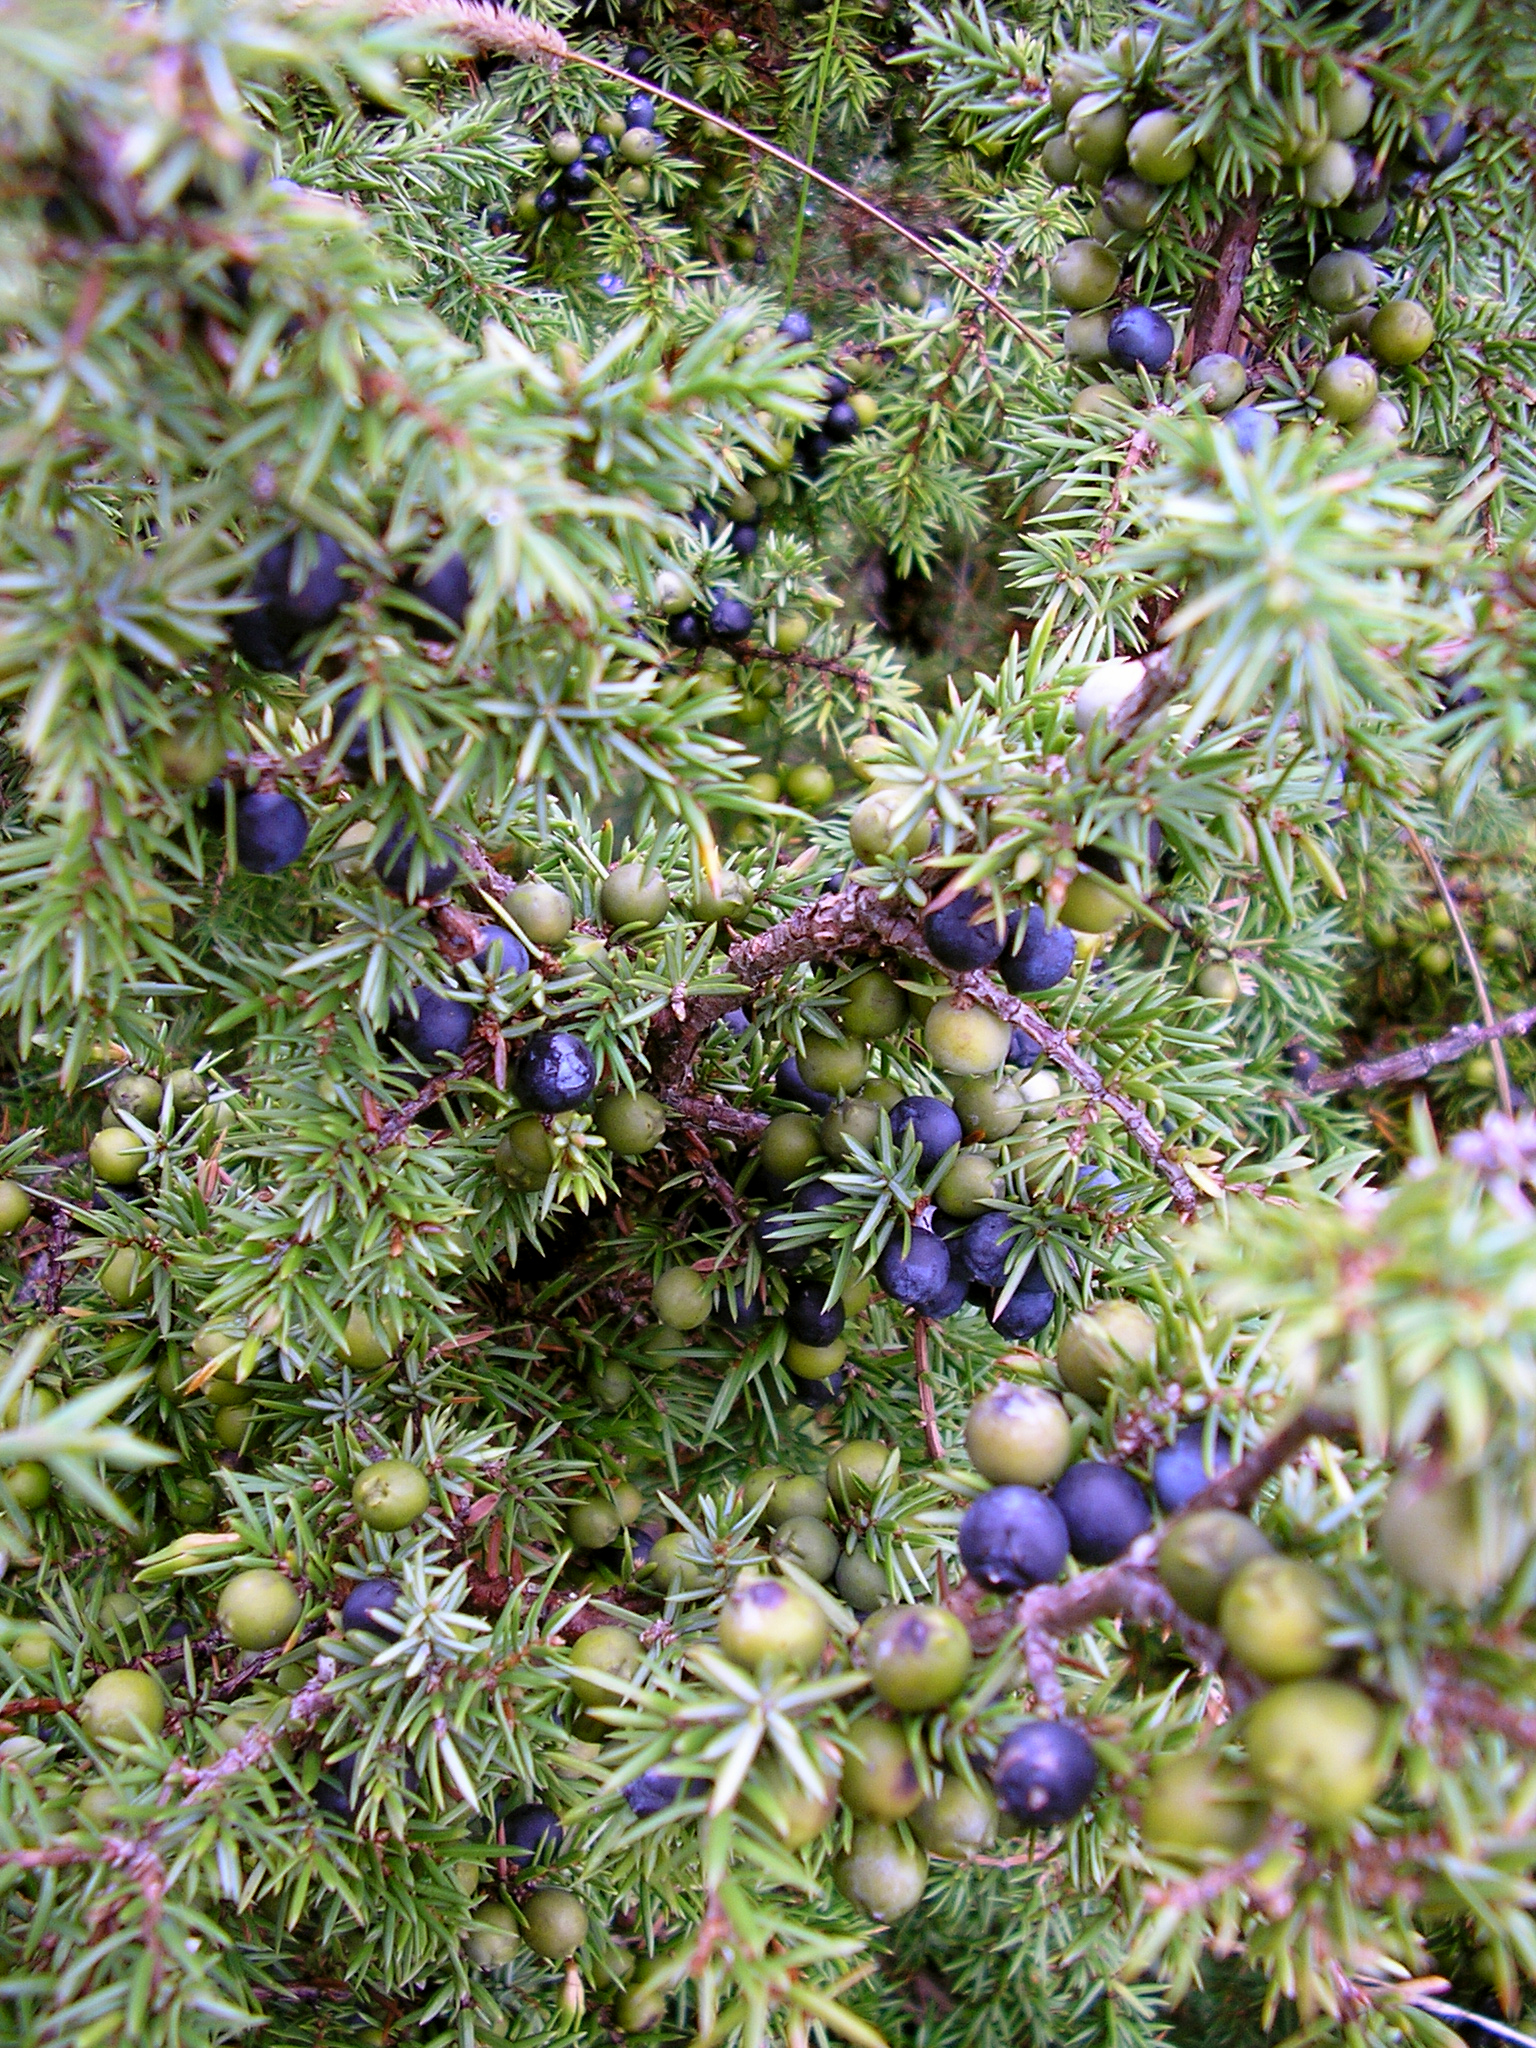 Web page for The juniper